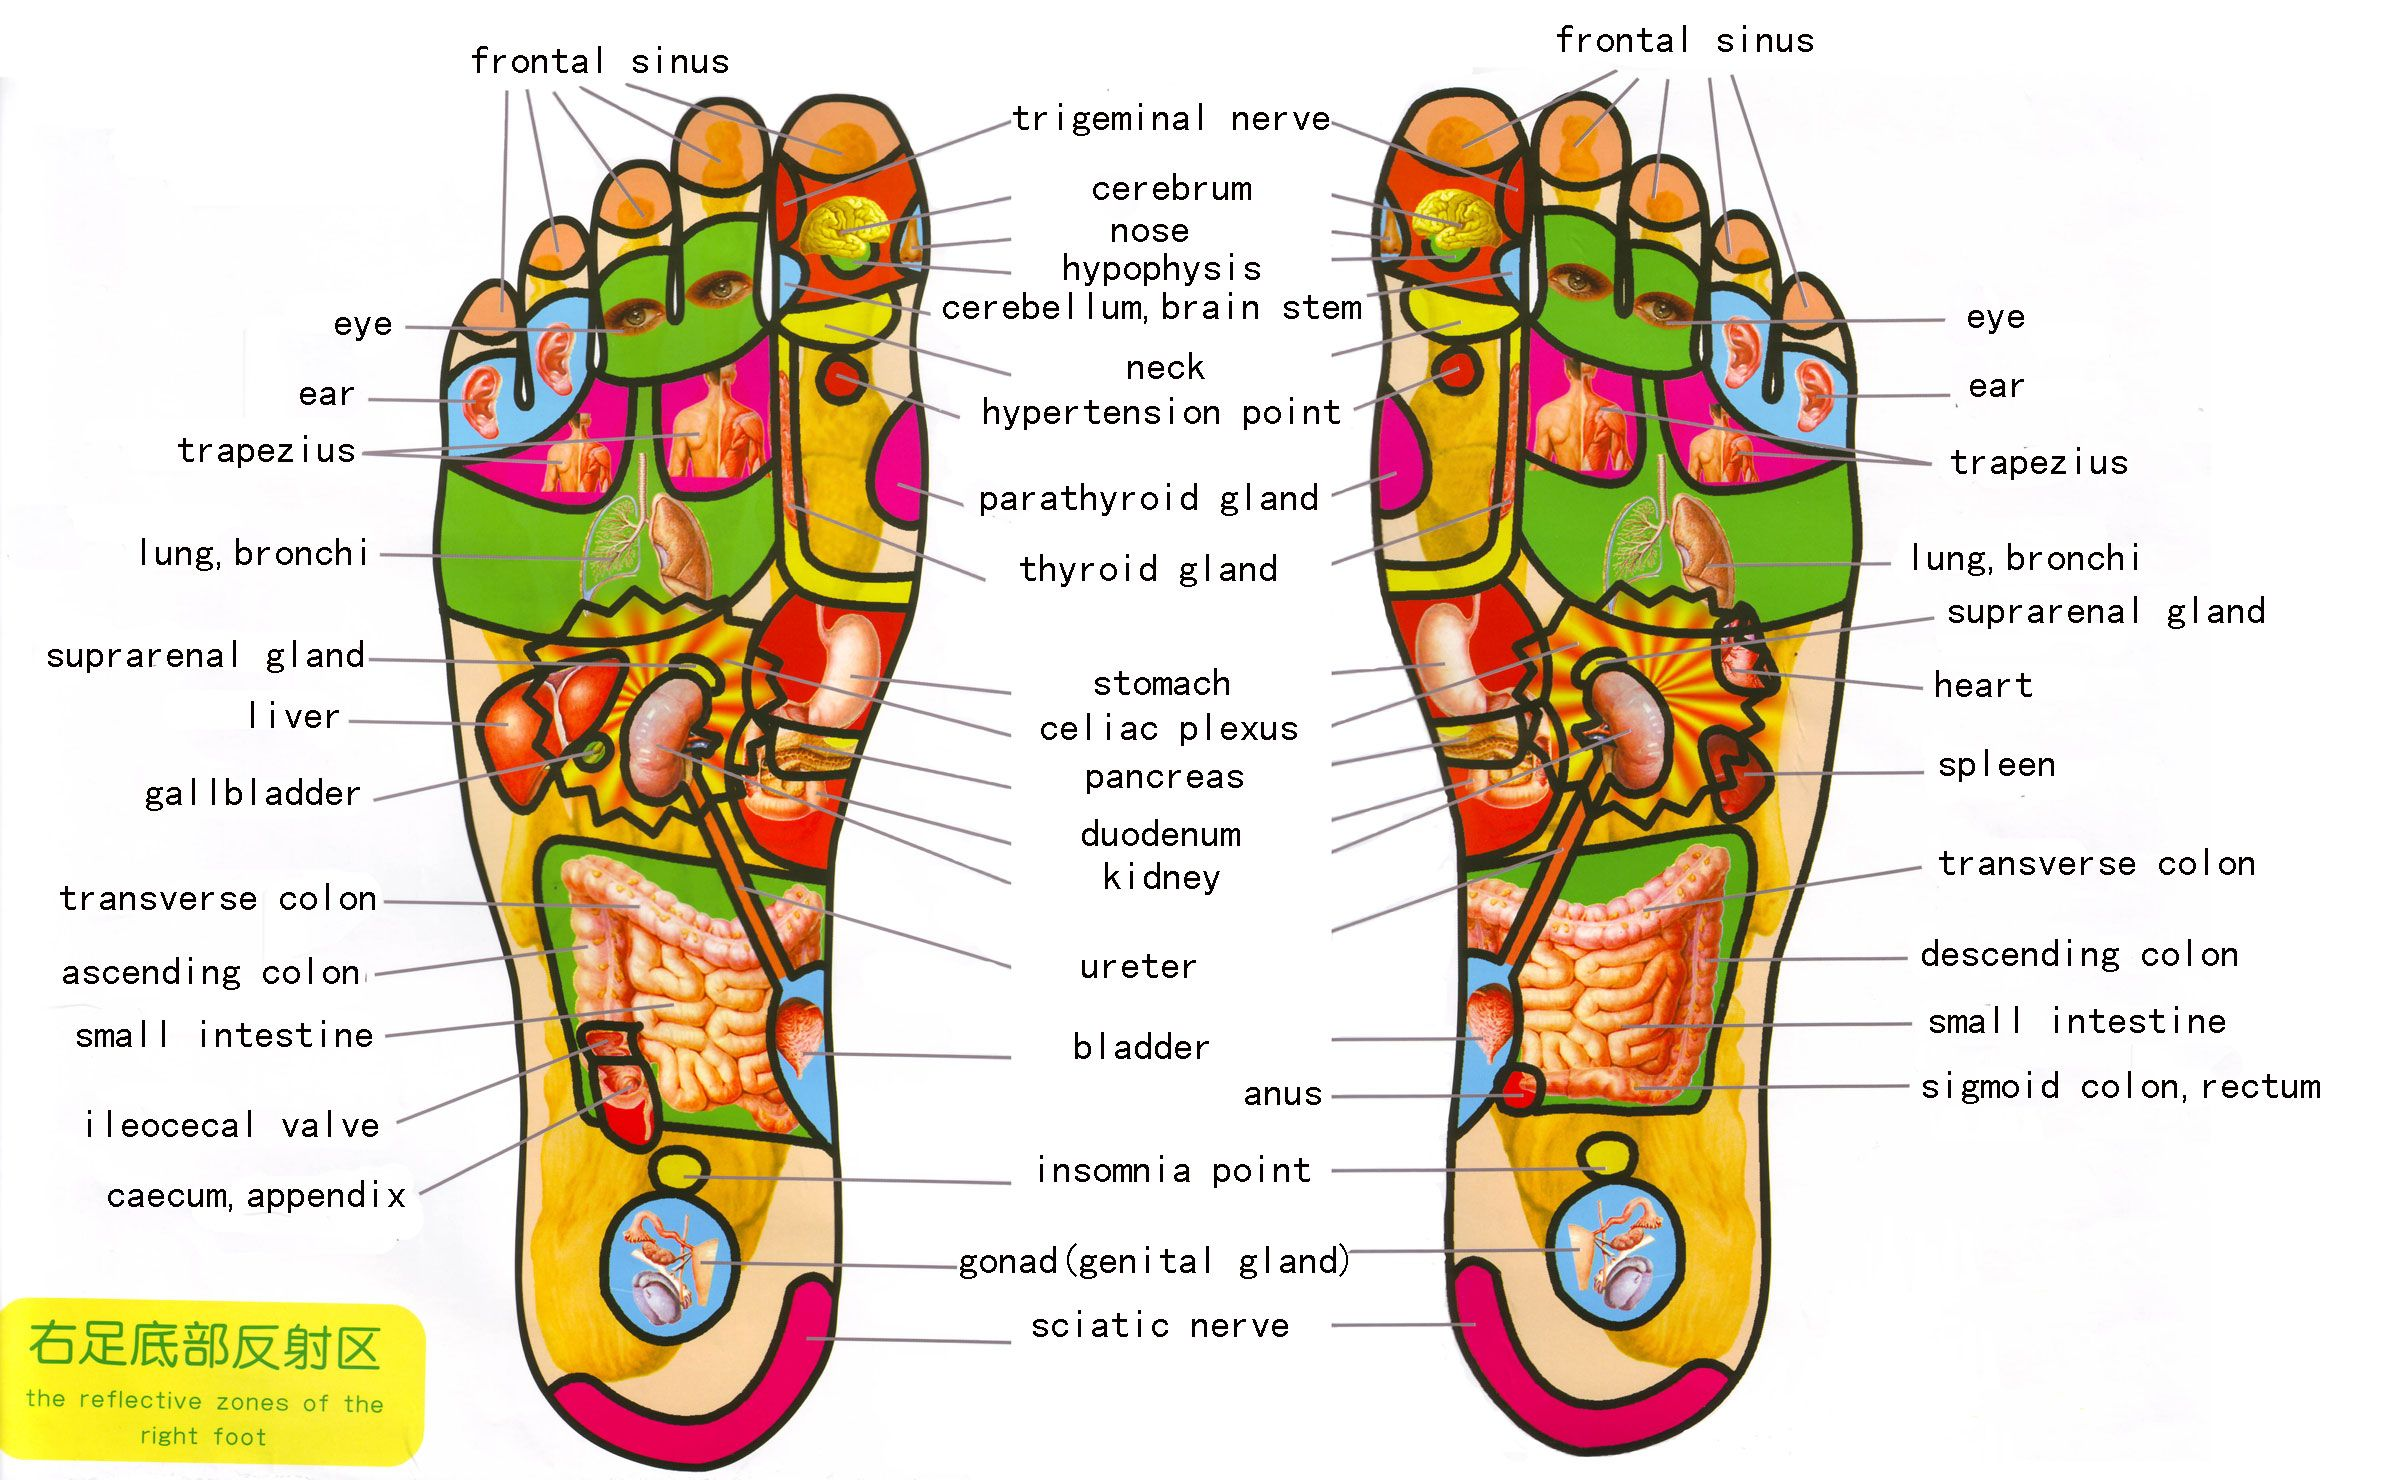 ea57071659dd324148f8c03700dfbd9b the reflective zones of the right and left foot,reflexology,foot